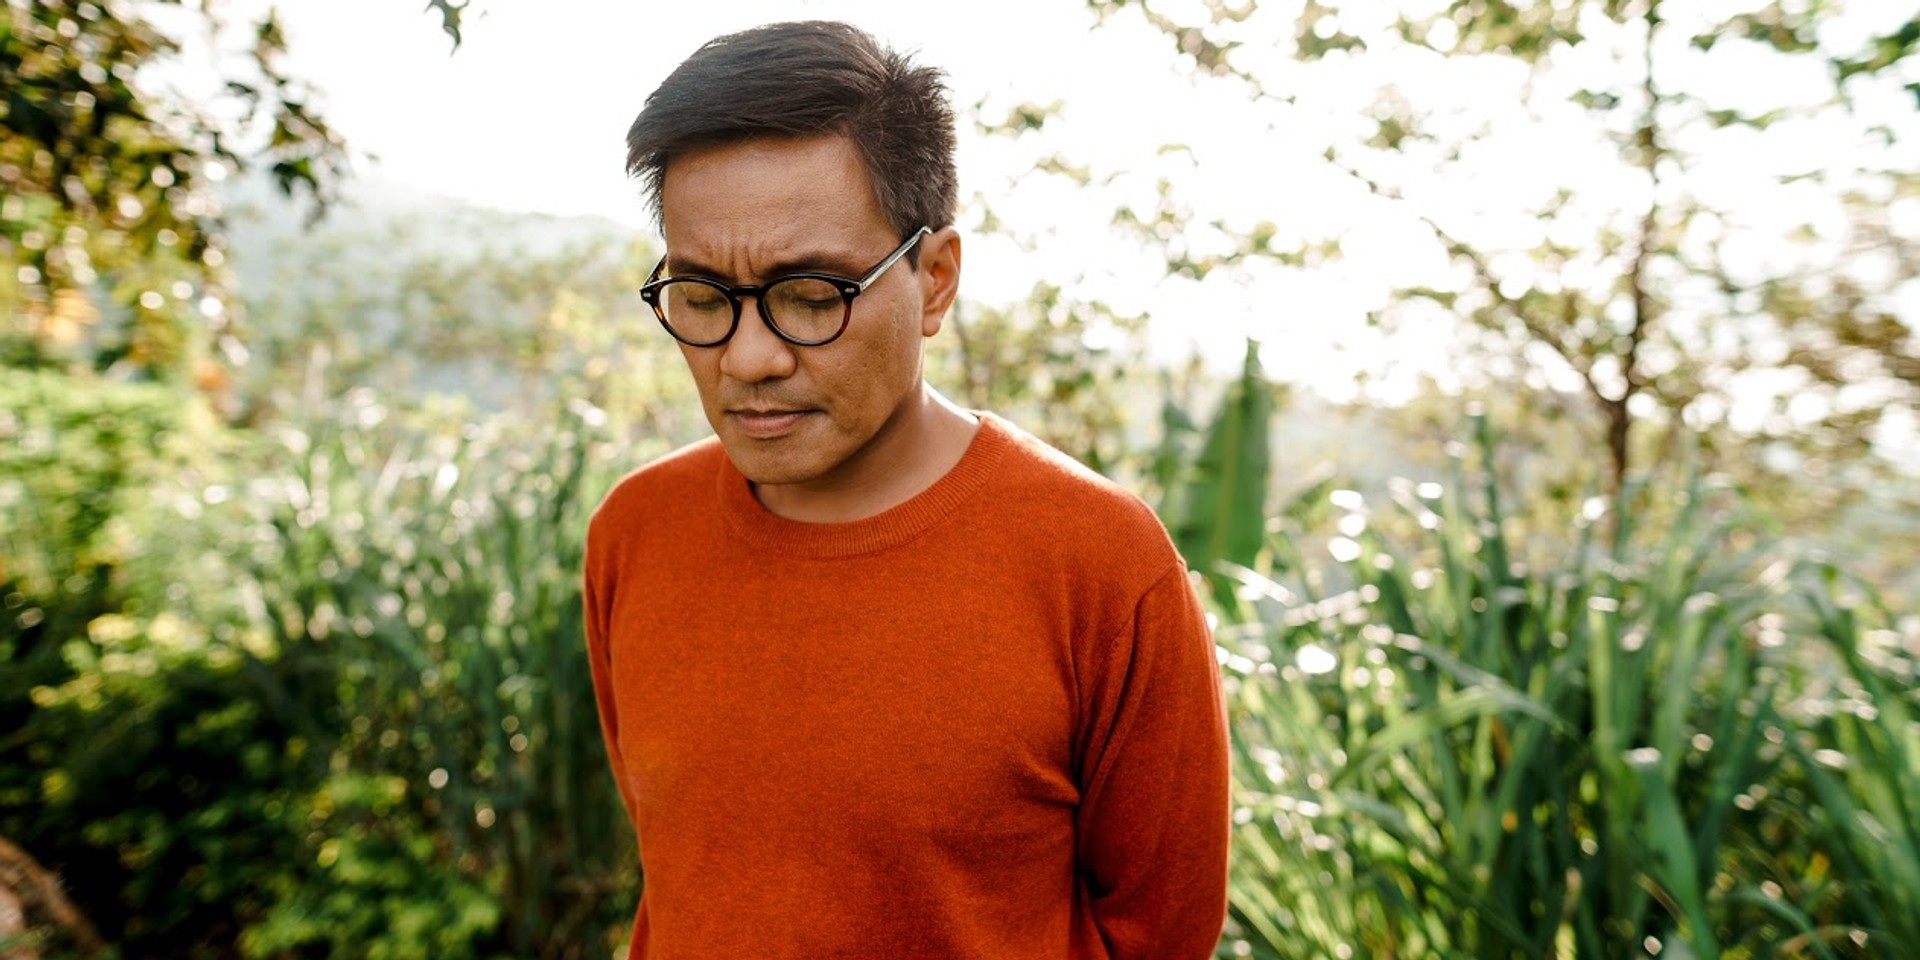 """""""It's a challenge. It's a mystery to solve"""": Ebe Dancel talks overcoming struggles with mental health"""